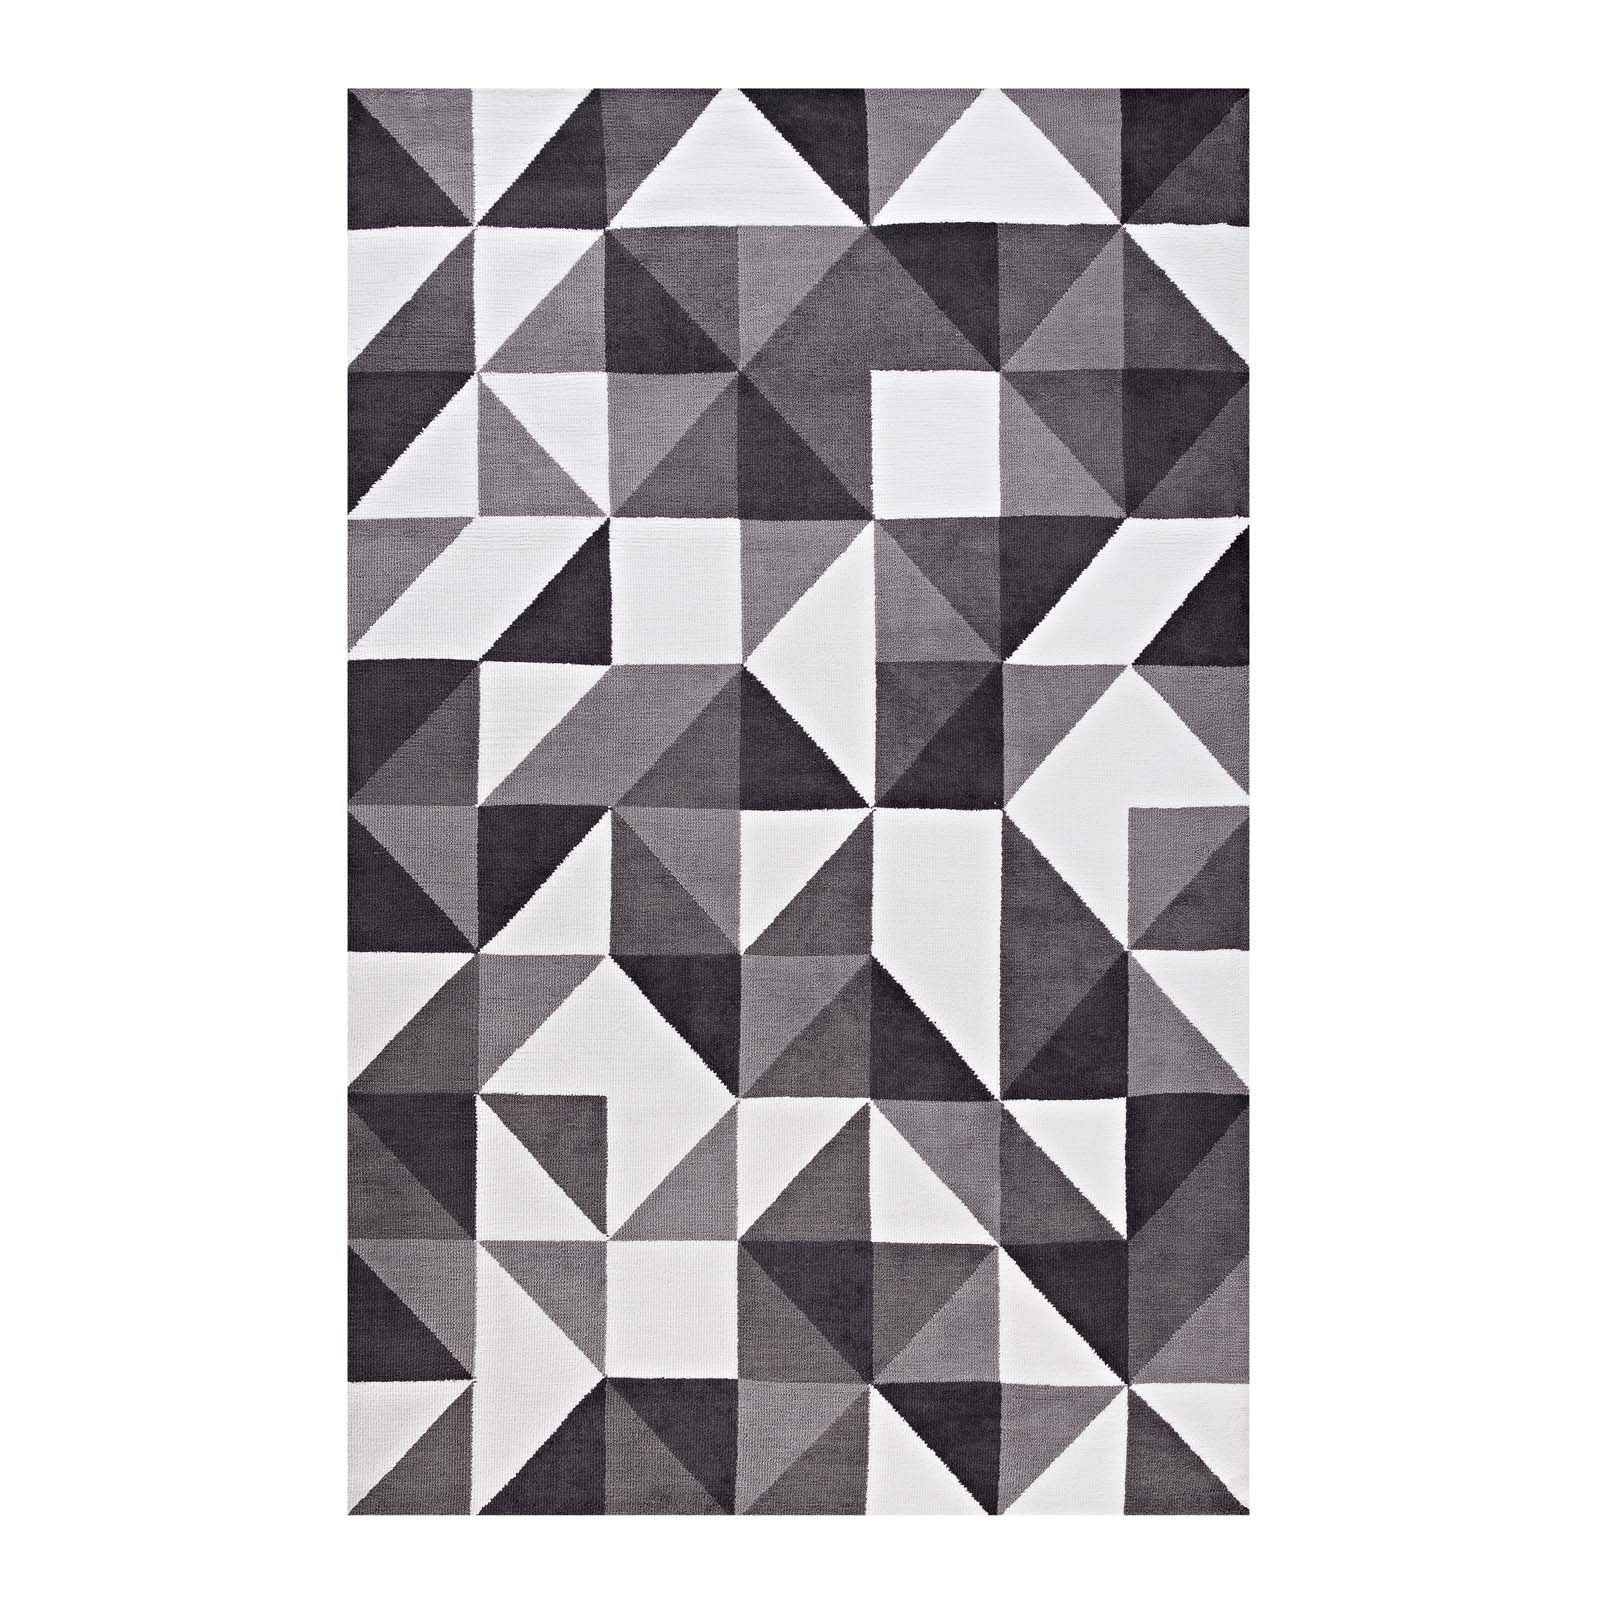 Picture of: Modern Black White Abstract Rug Geometric Triangles Pattern Contemporary Design Sisal Seagrass Area Rugs Home Garden